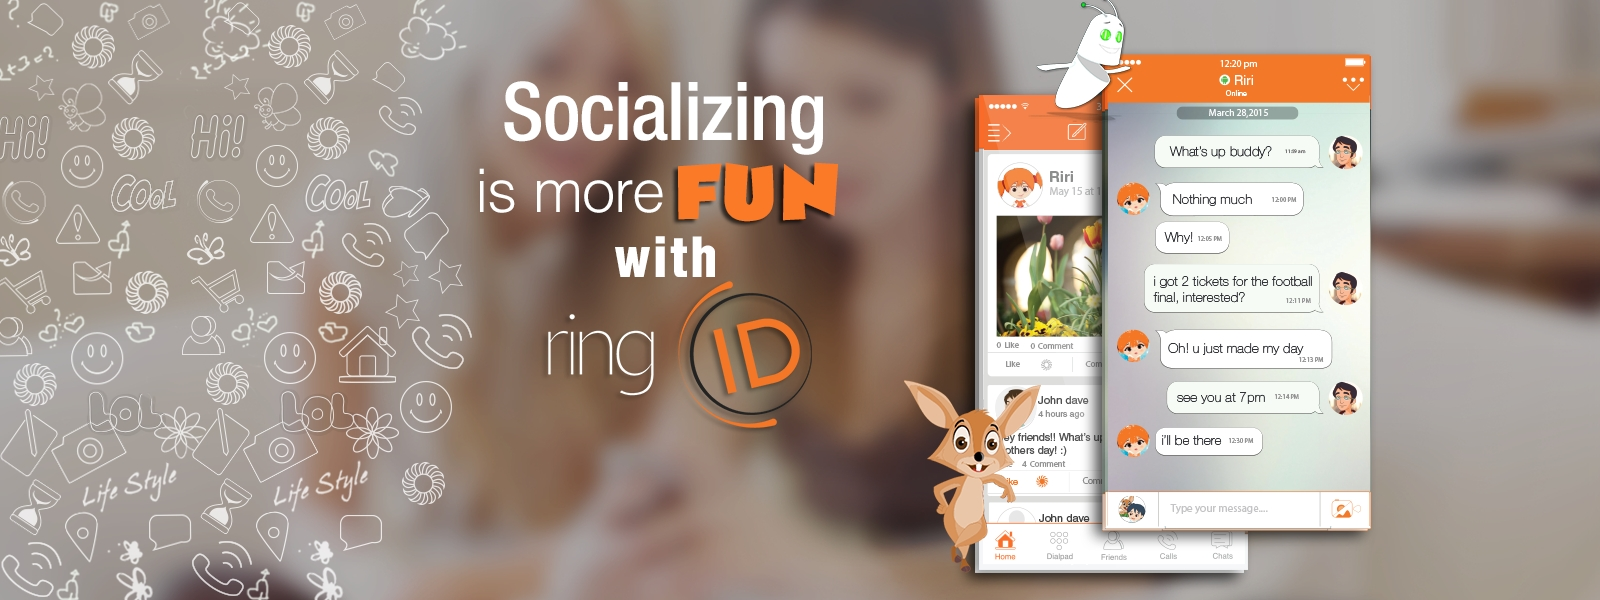 ring-ID-app-the-technews